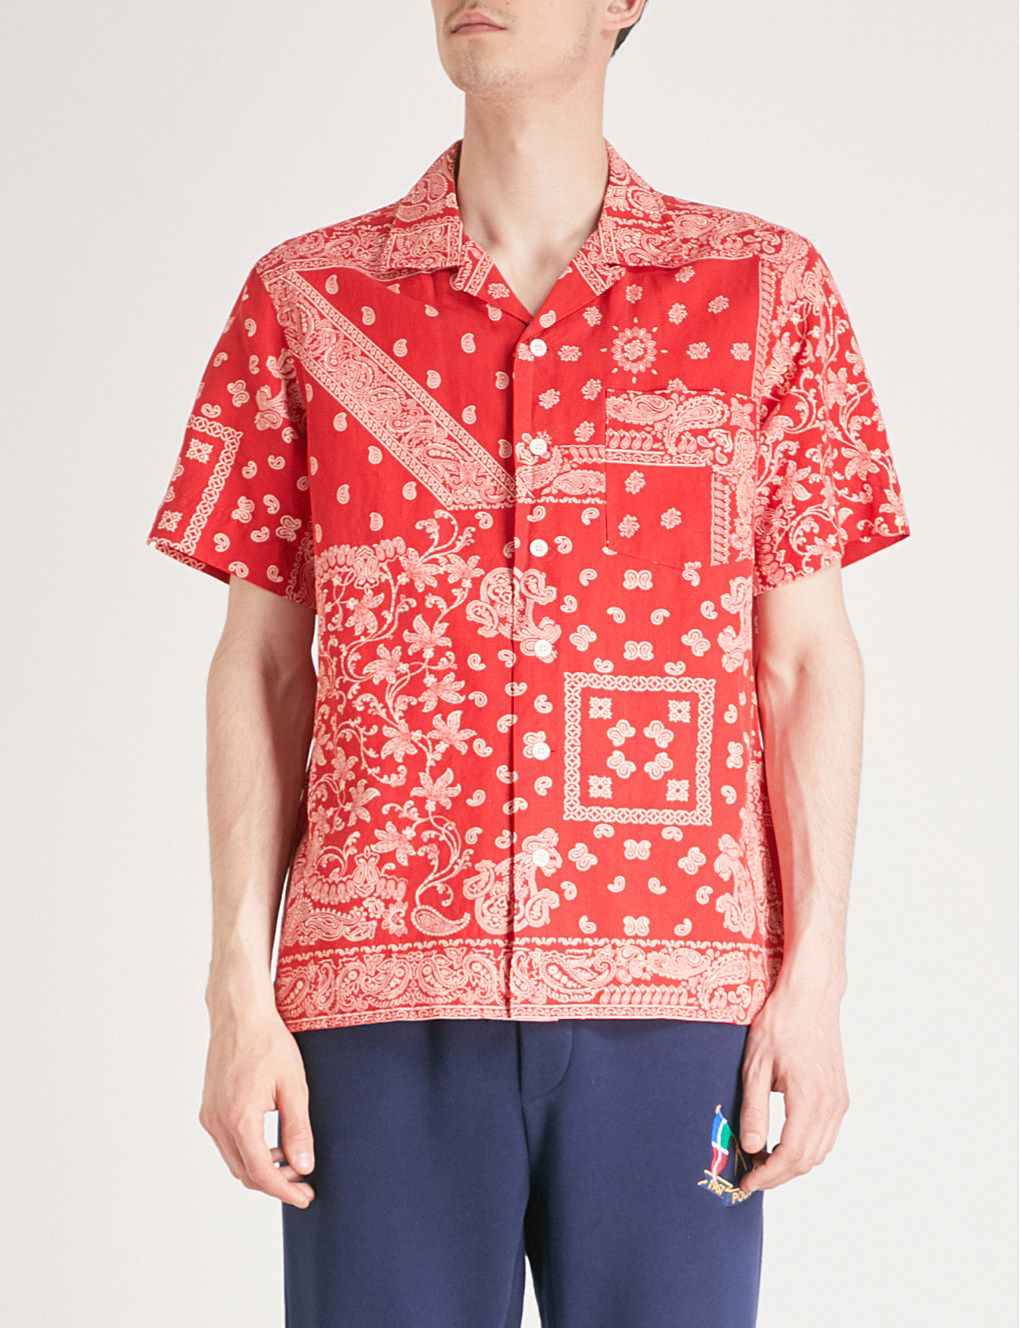 cf01d0fb9 POLO RALPH LAUREN - Bandana-print cotton, linen and silk-blend shirt |  Selfridges.com